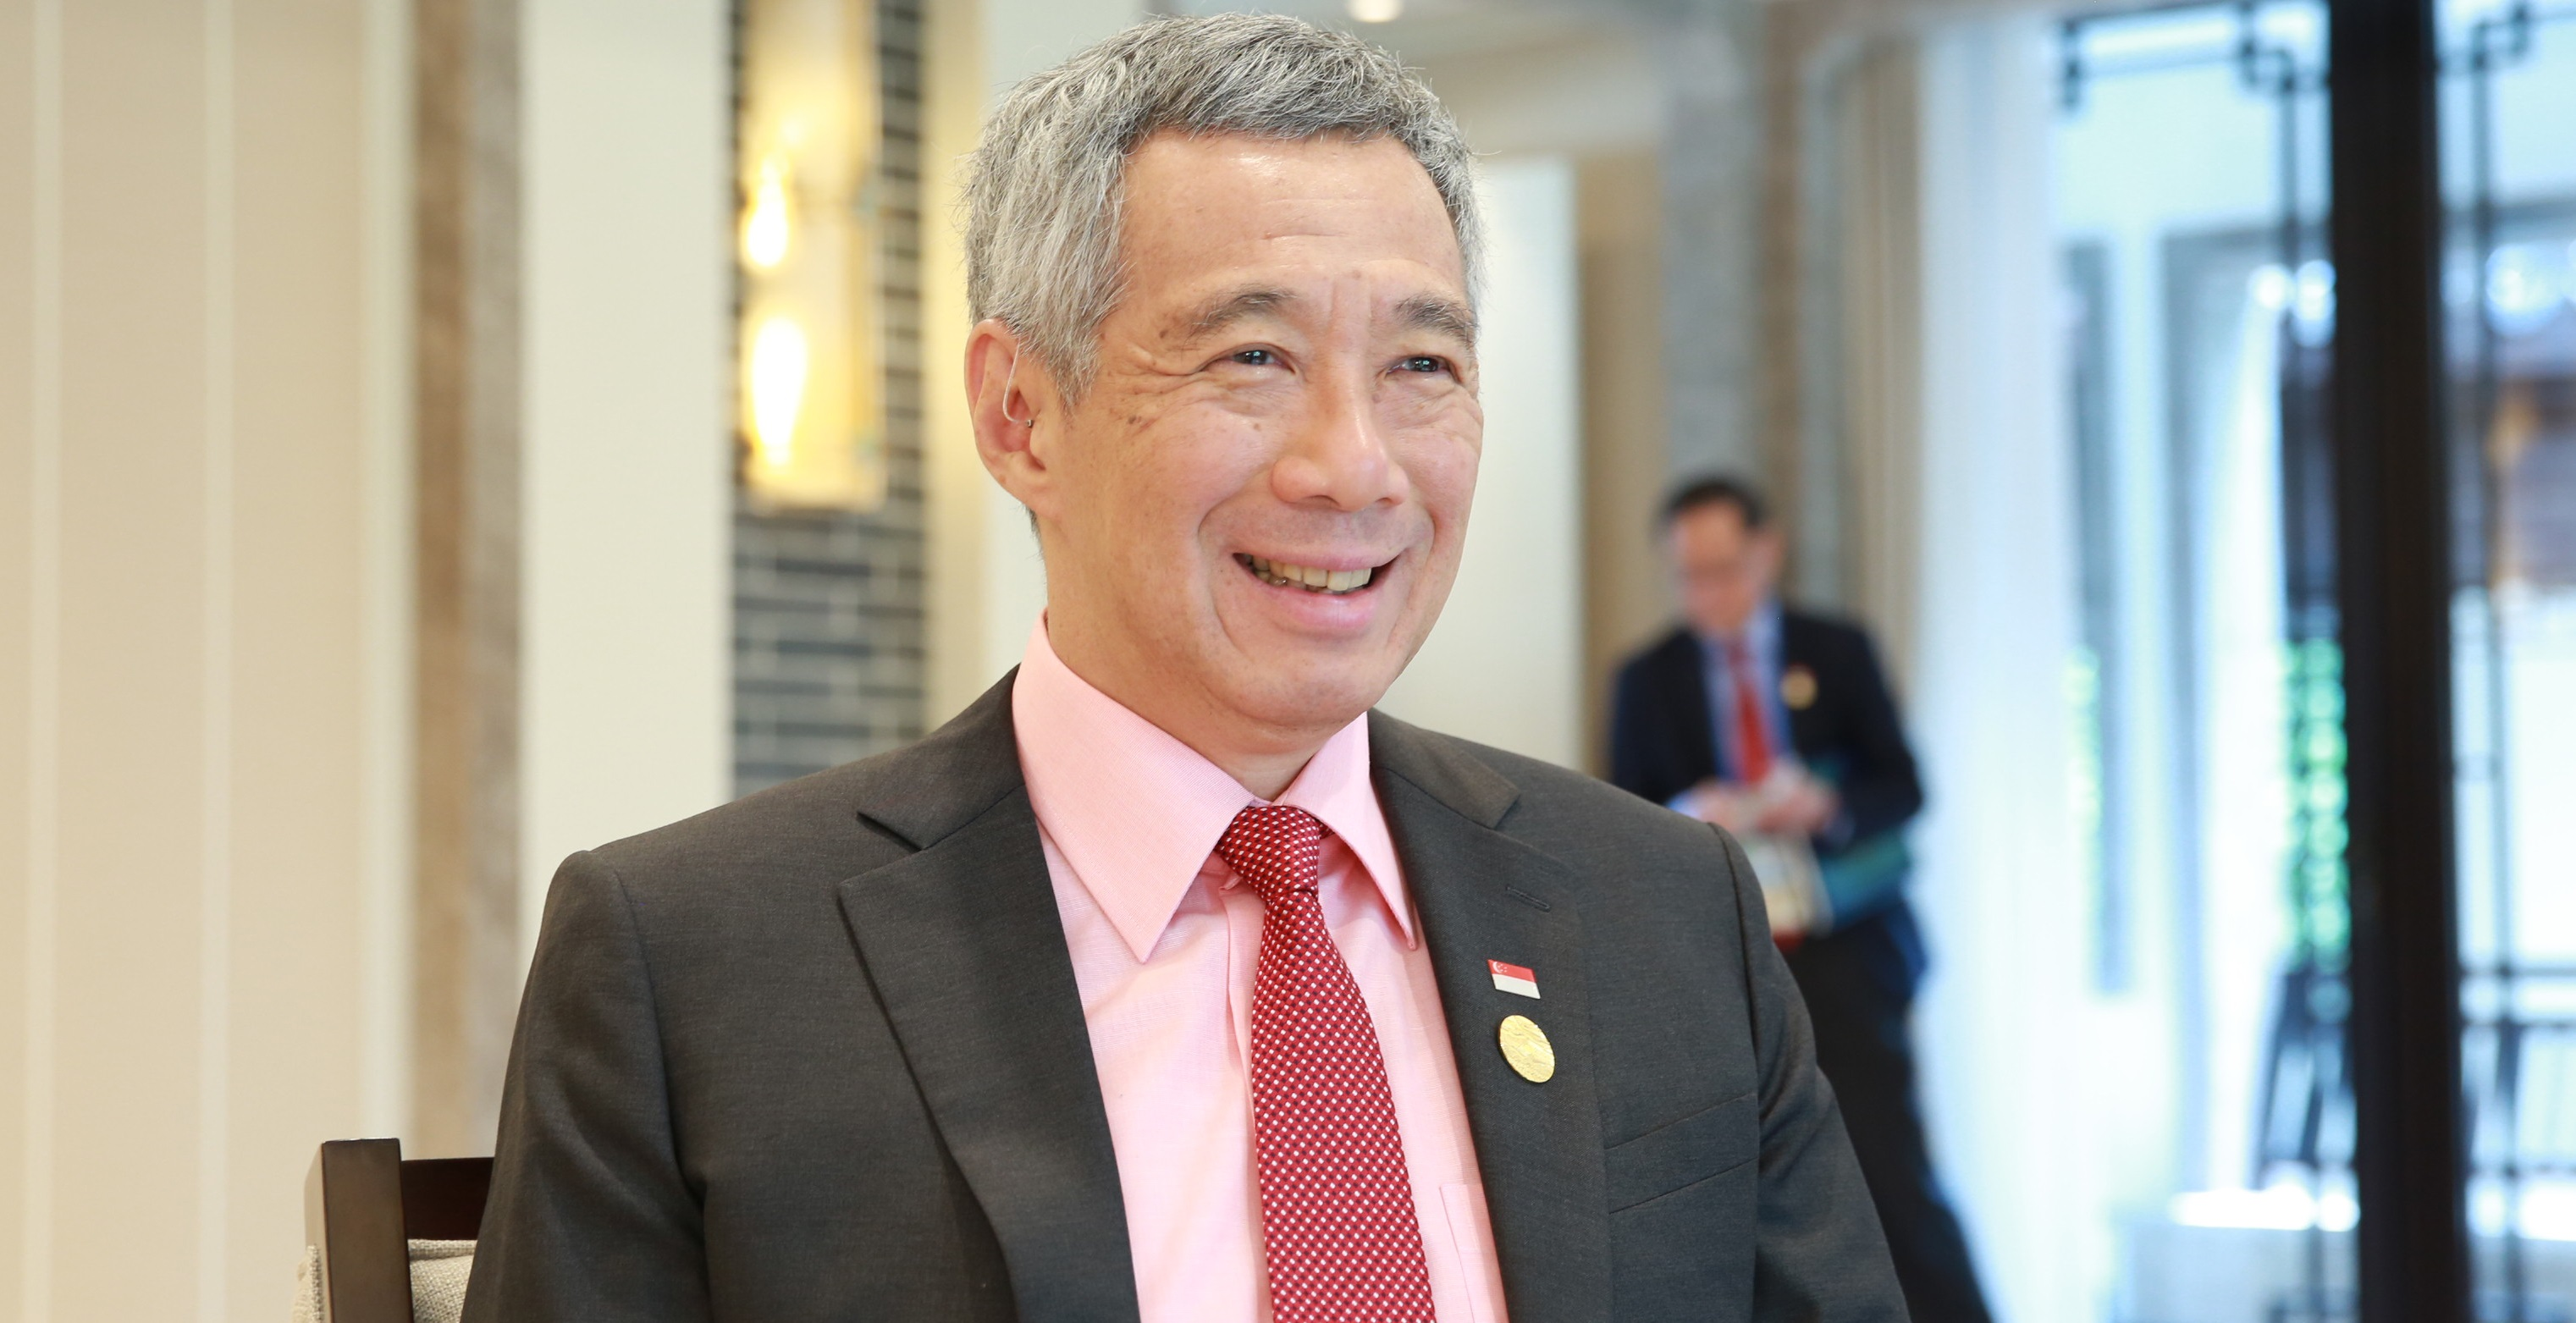 Prime Minister of Singapore Lee Hsien Loong.